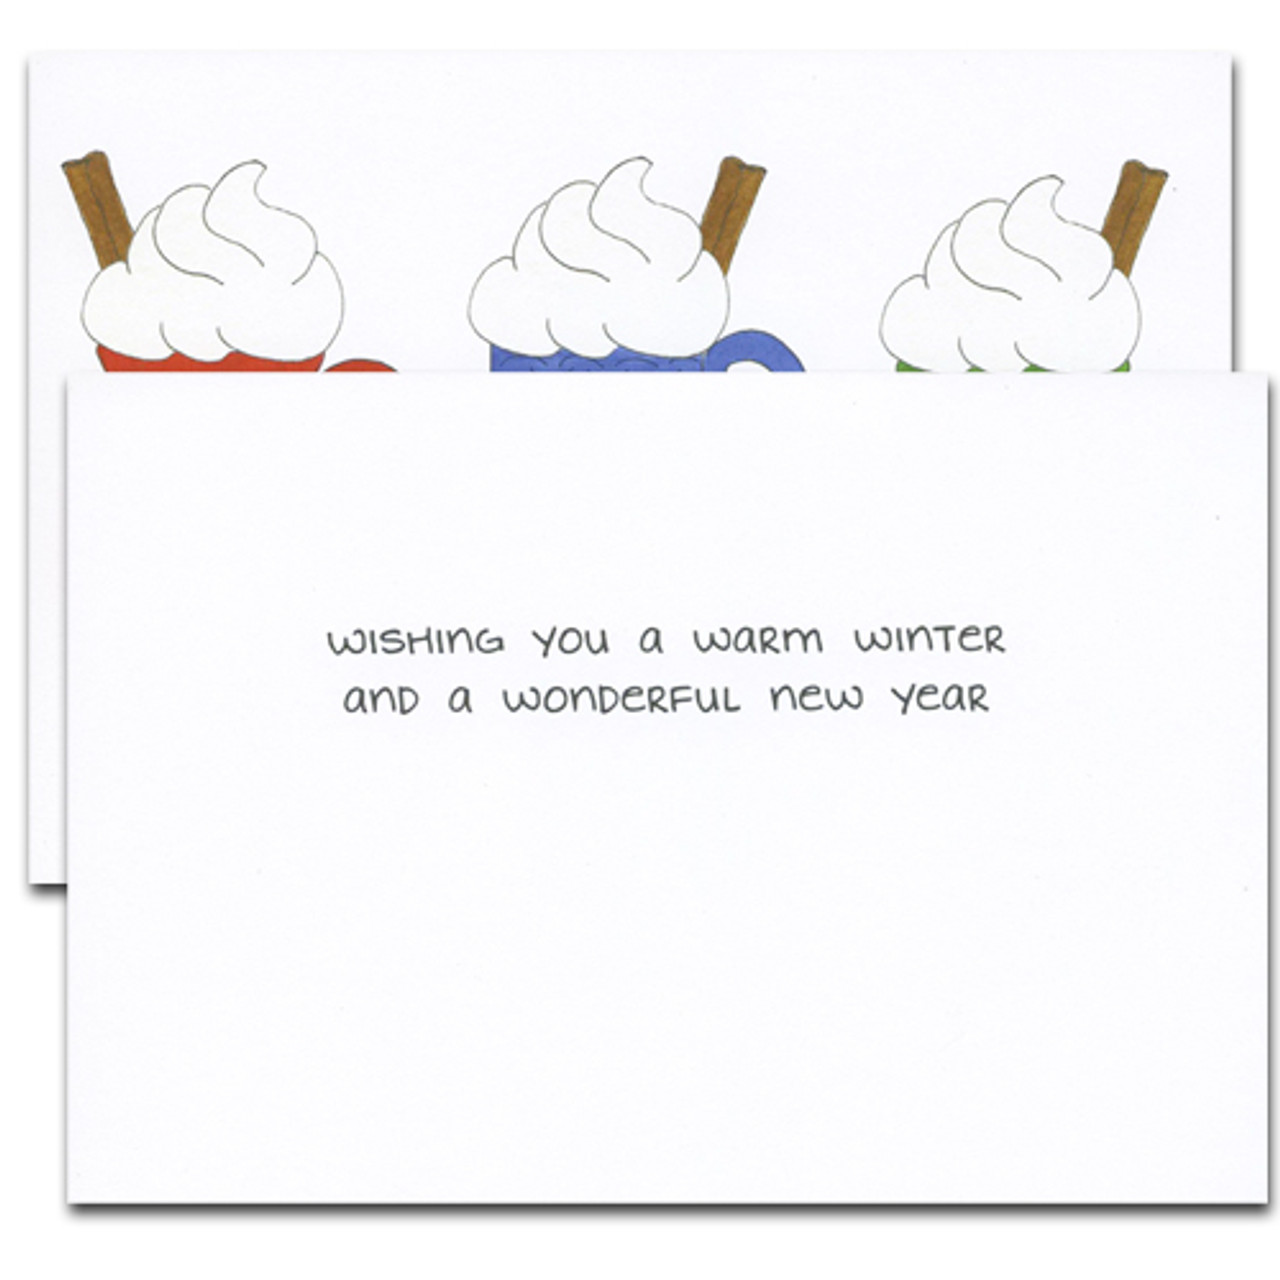 """Cheers Business New Year  Holiday Greetings Card inside greeting reads, """"Wishing you a warm winter and a wonderful new year"""""""